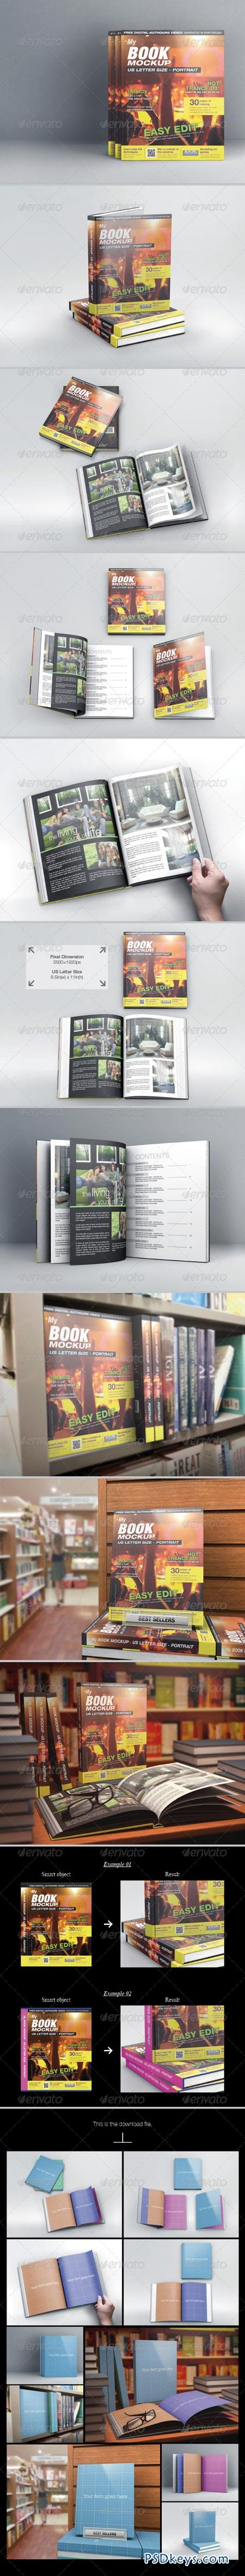 MyBook US Letter Size Mock-up 6395829